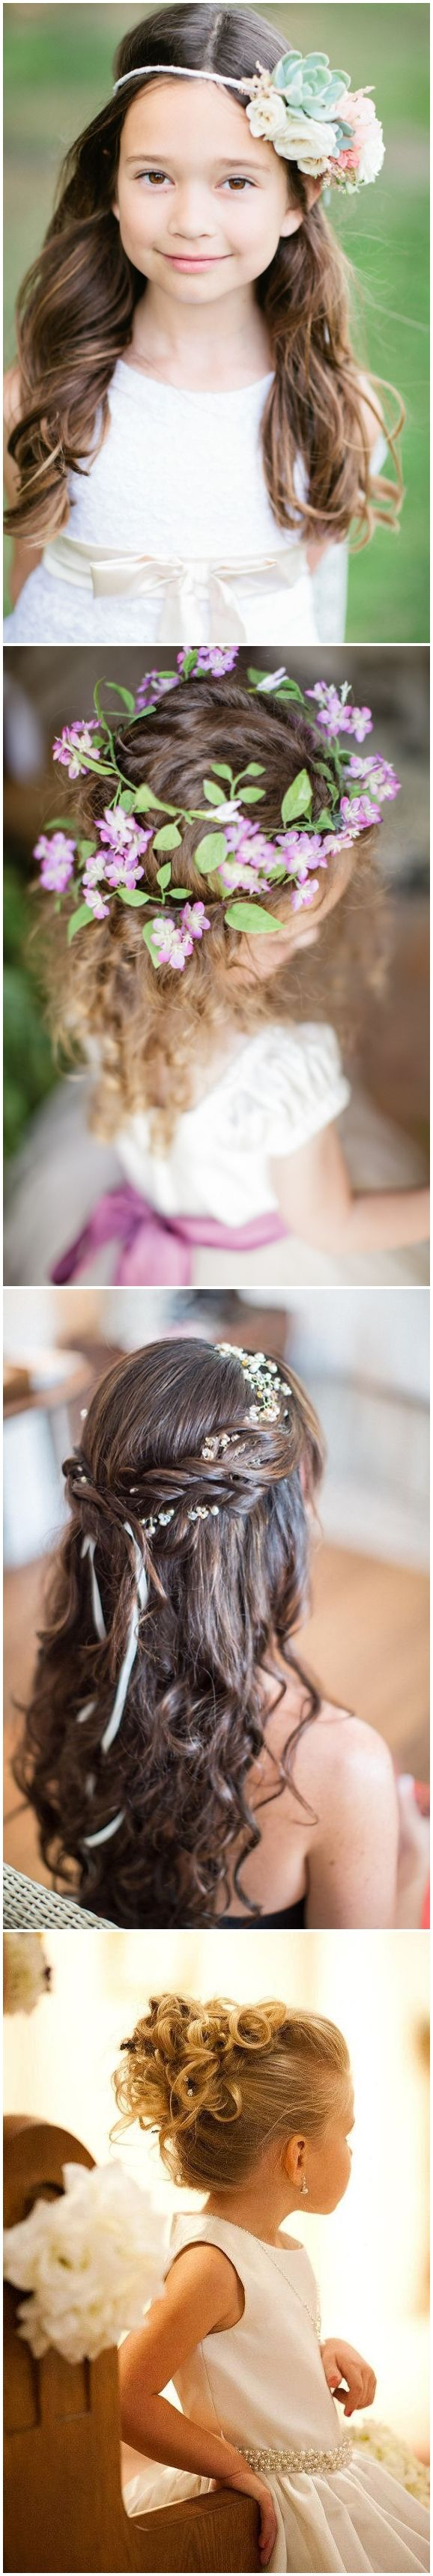 wedding hairstyles : cute little girl hairstyles-updos